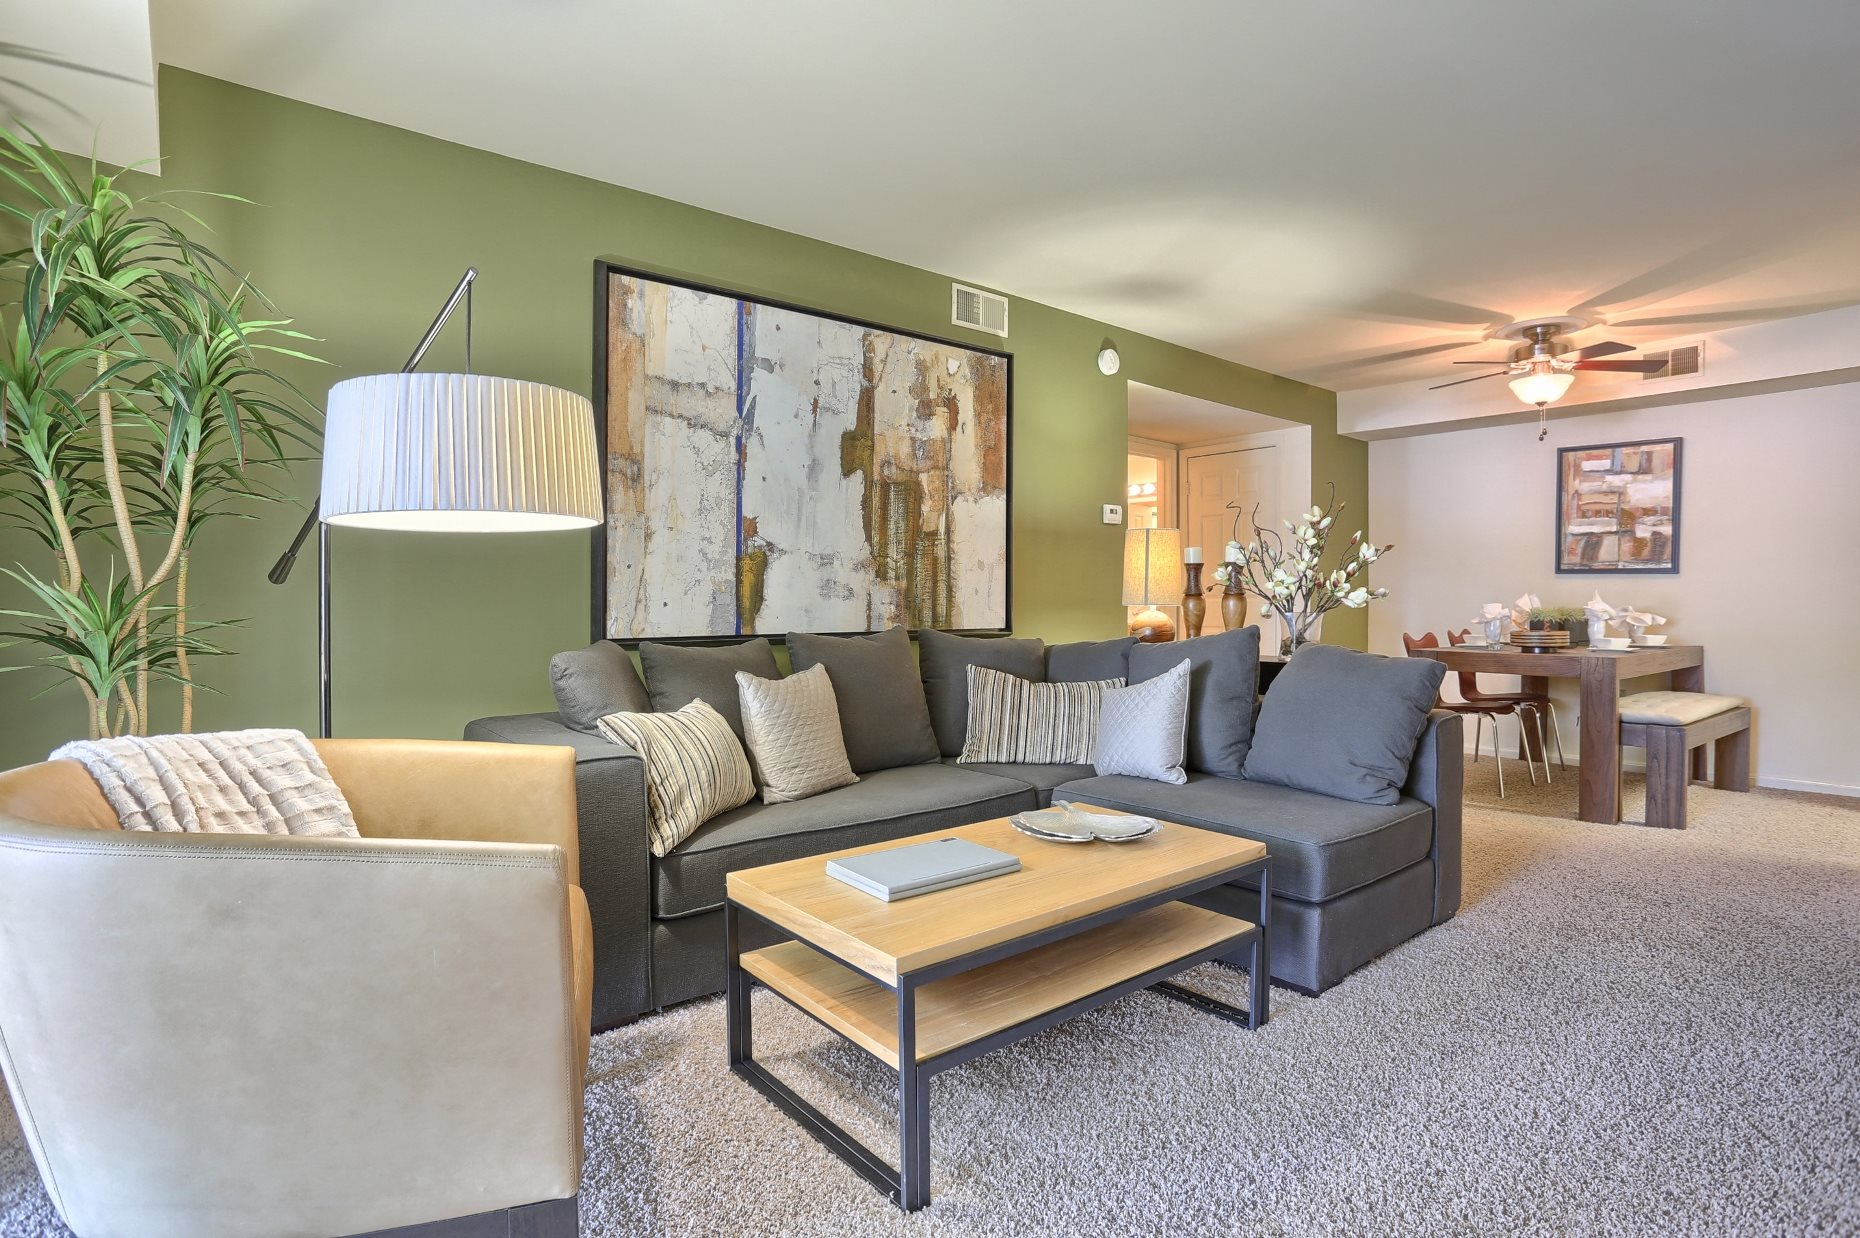 Photos And Video Of Springford Apartments In Harrisburg Pa